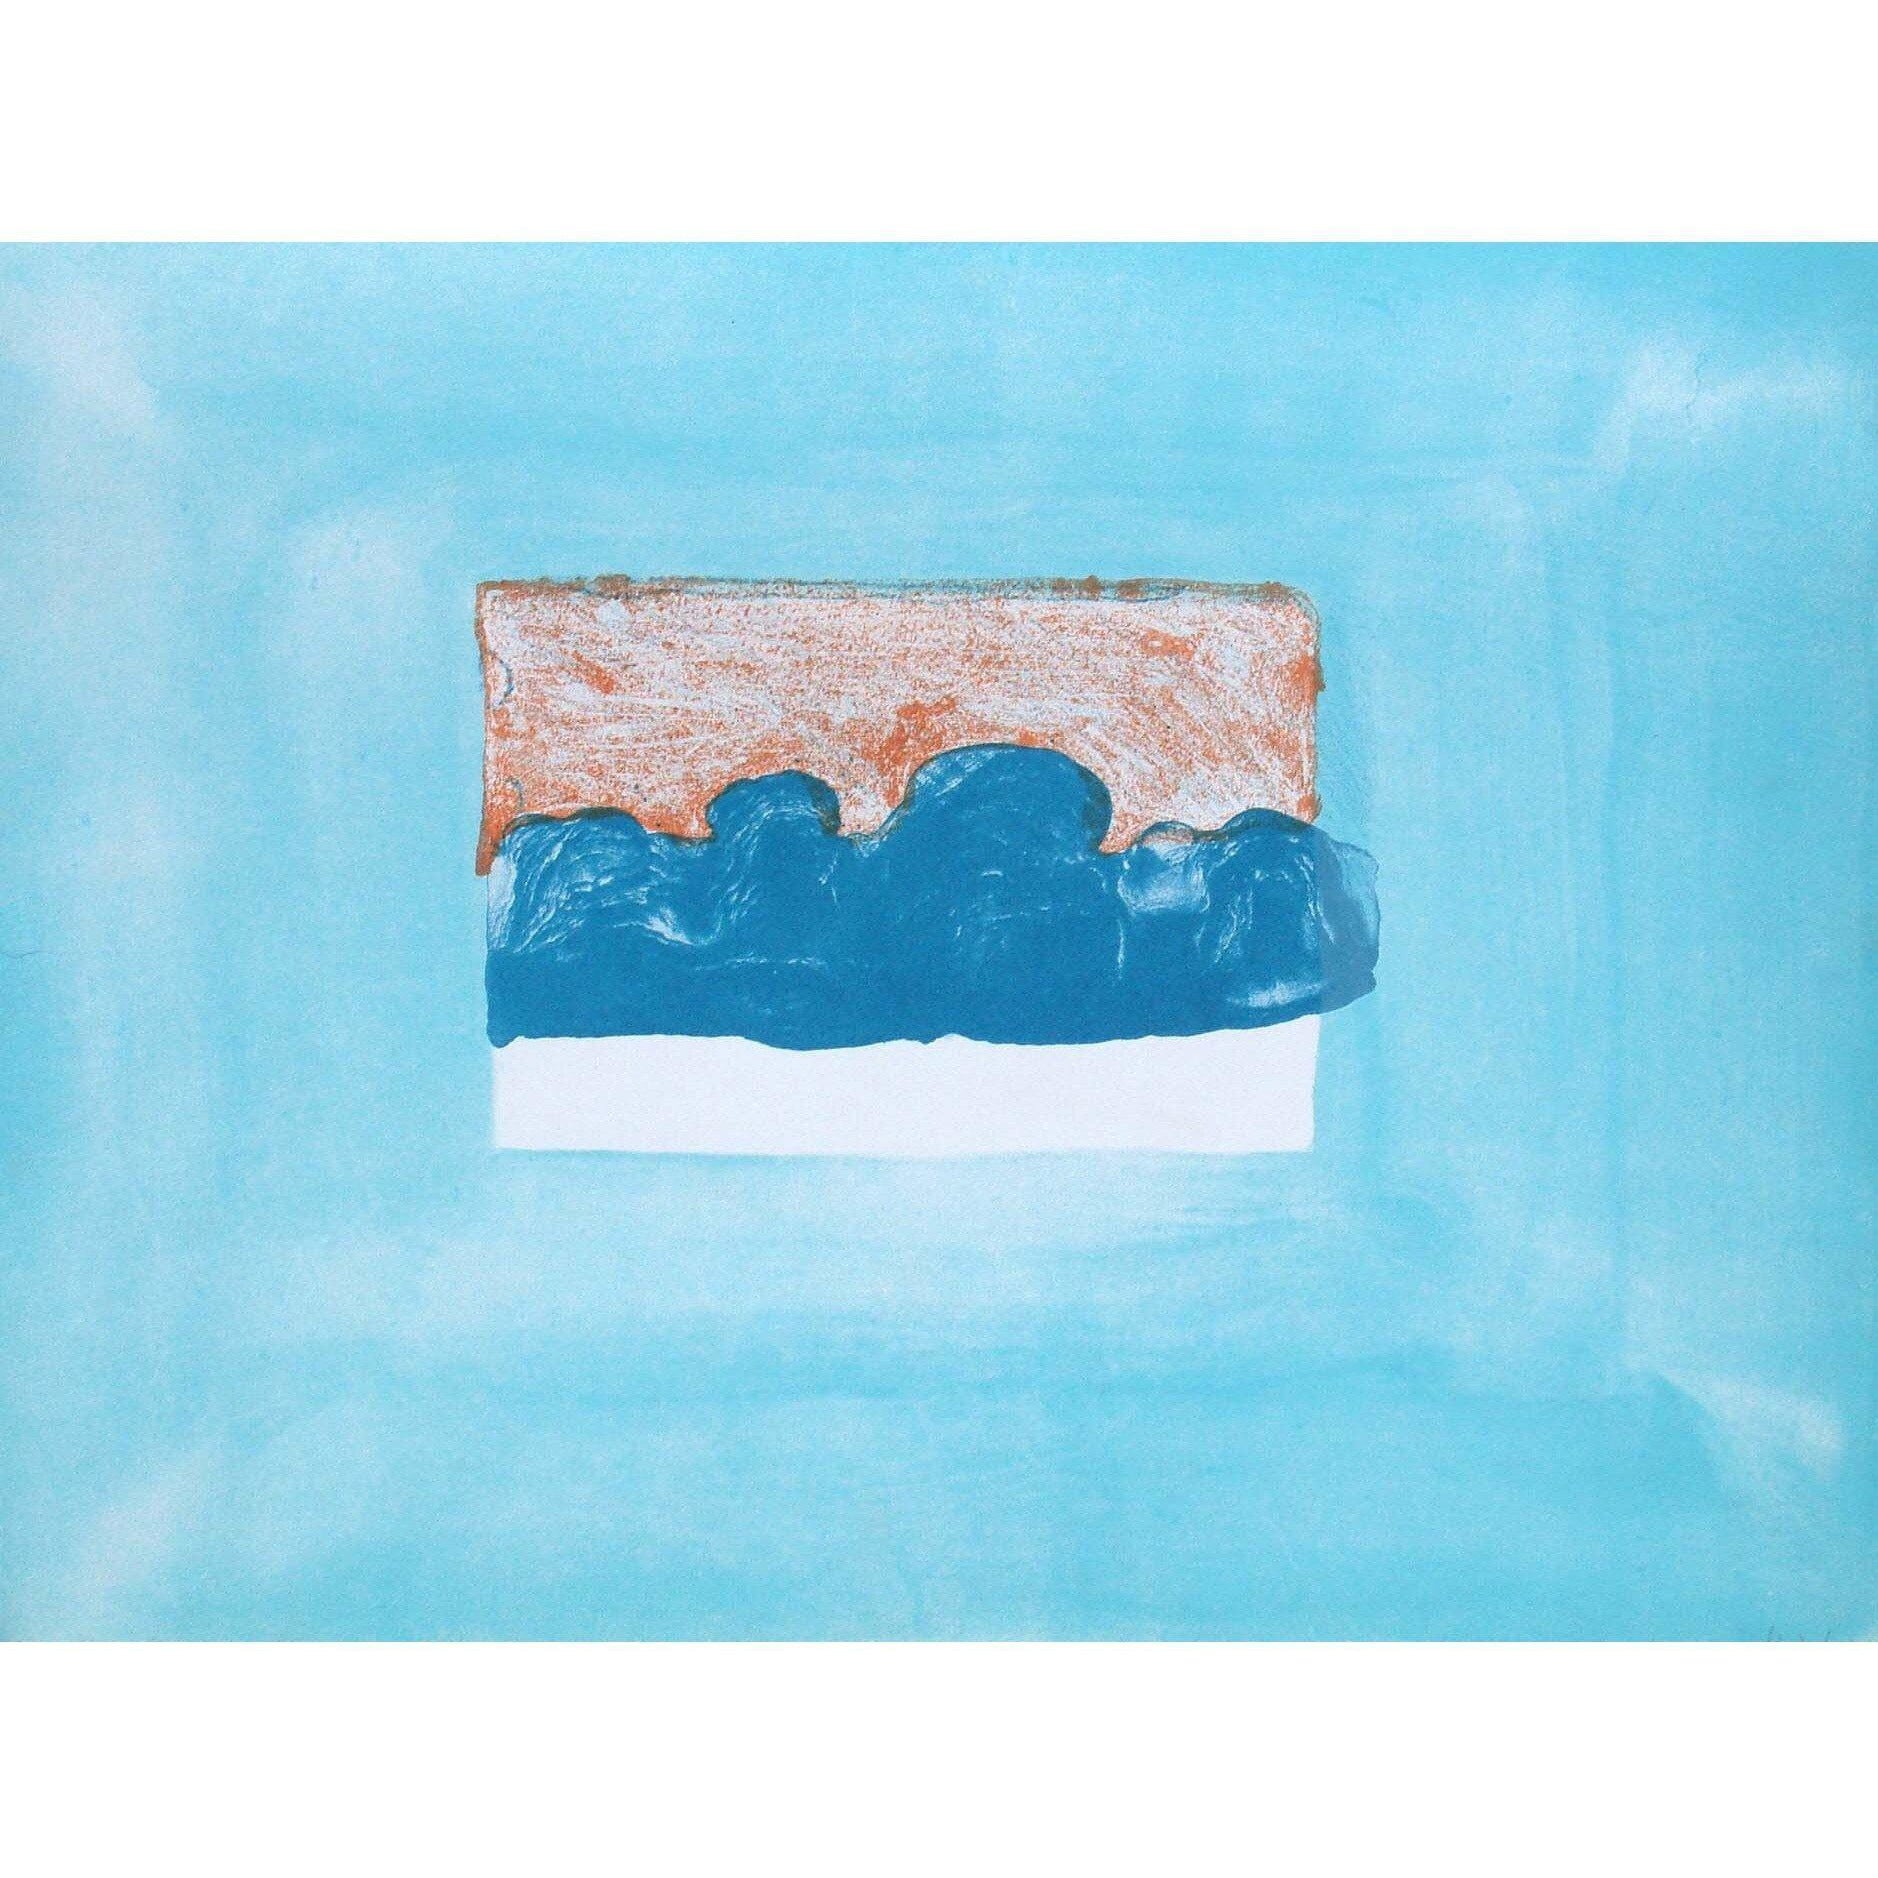 Howard Hodgkin After Luke Howard for John Constable